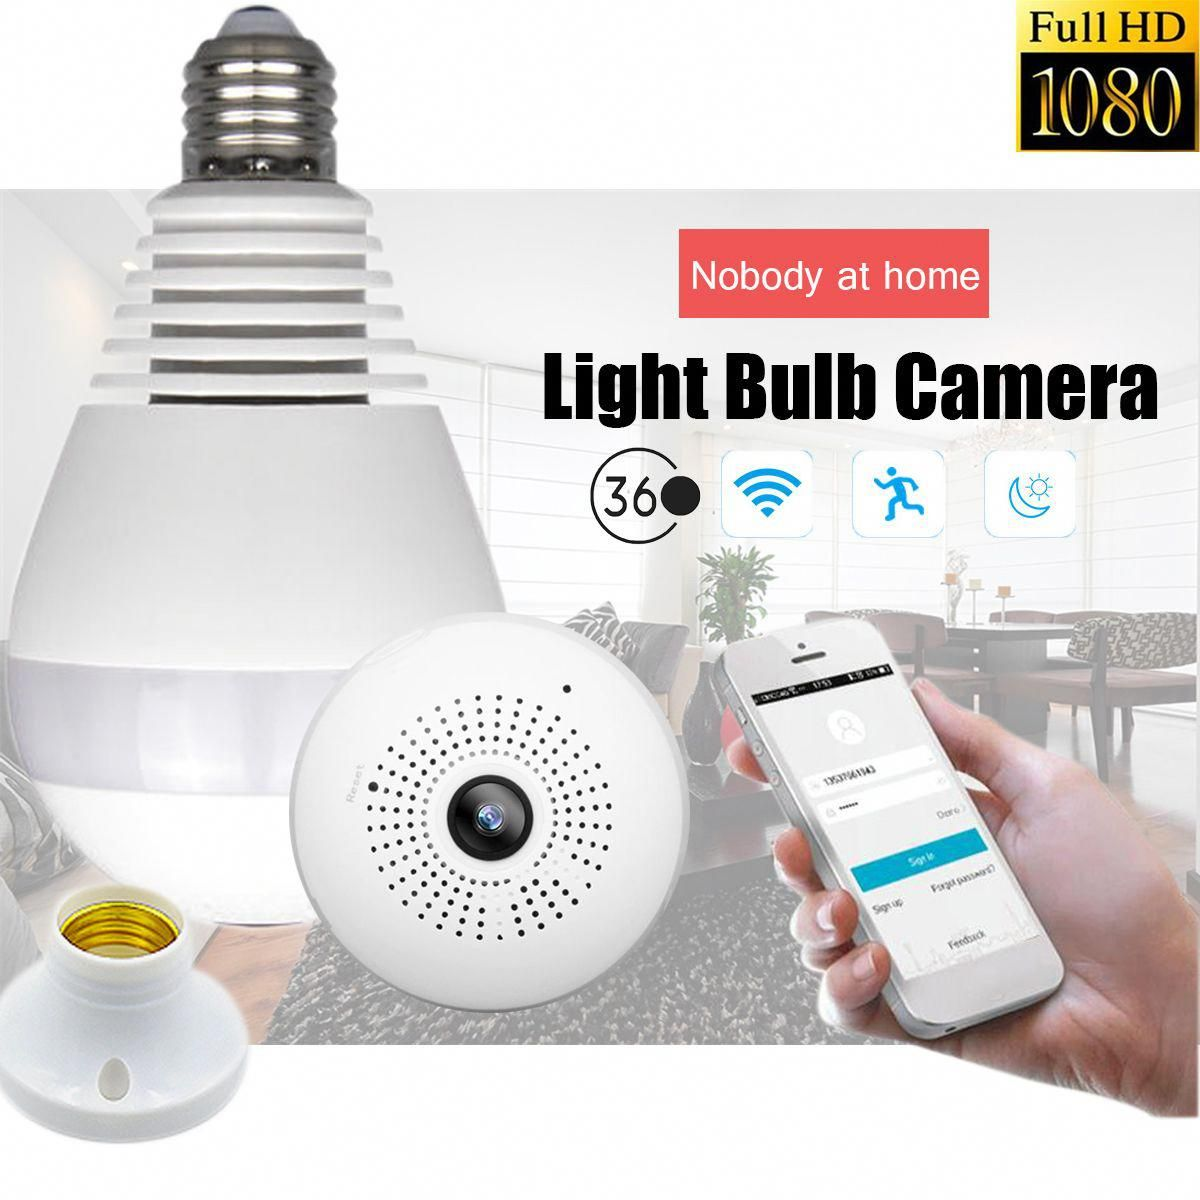 We Ll Answer All The Security Alarms Questions You May Have In 2020 Wireless Home Security Systems Security Cameras For Home Smart Light Bulbs